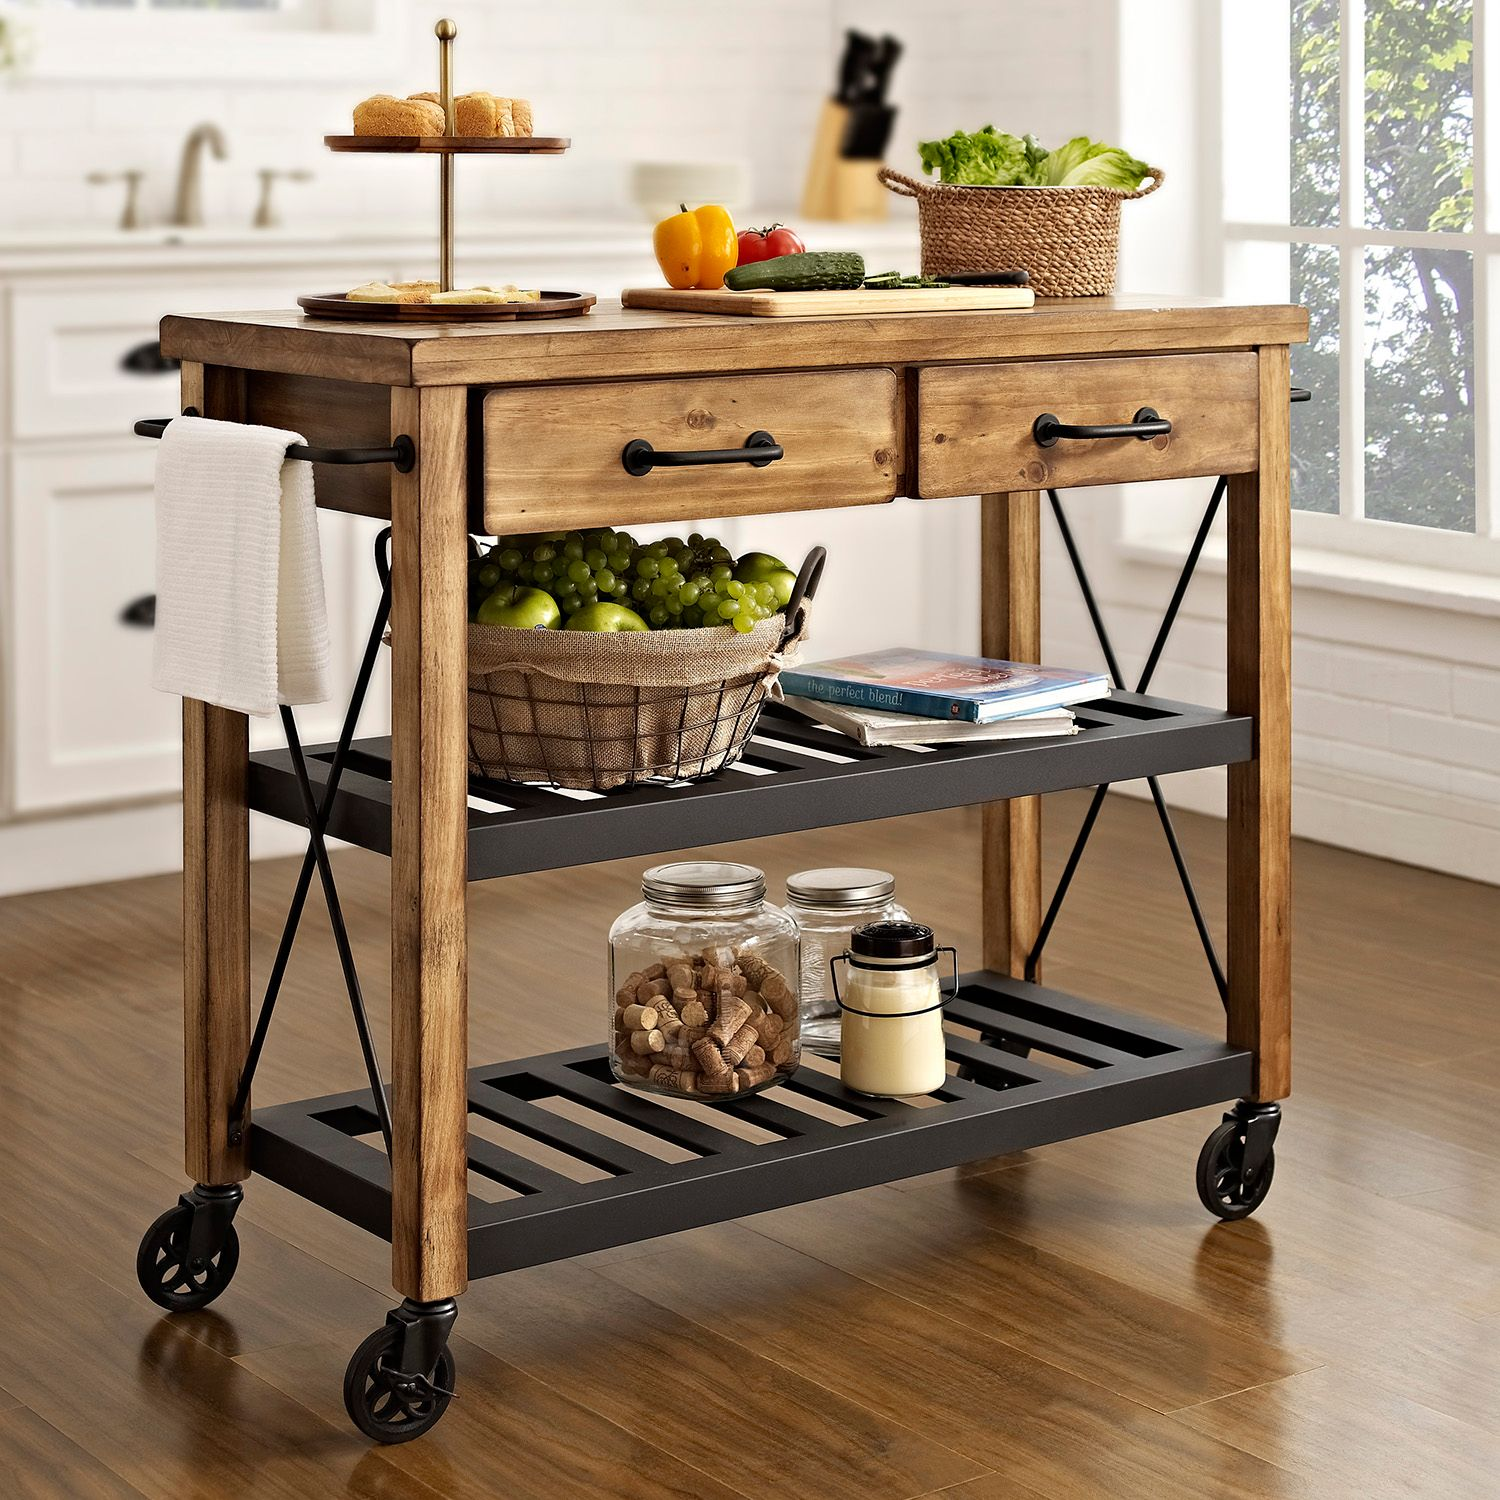 Superb Crosley Furniture Roots Rack Industrial Kitchen Cart